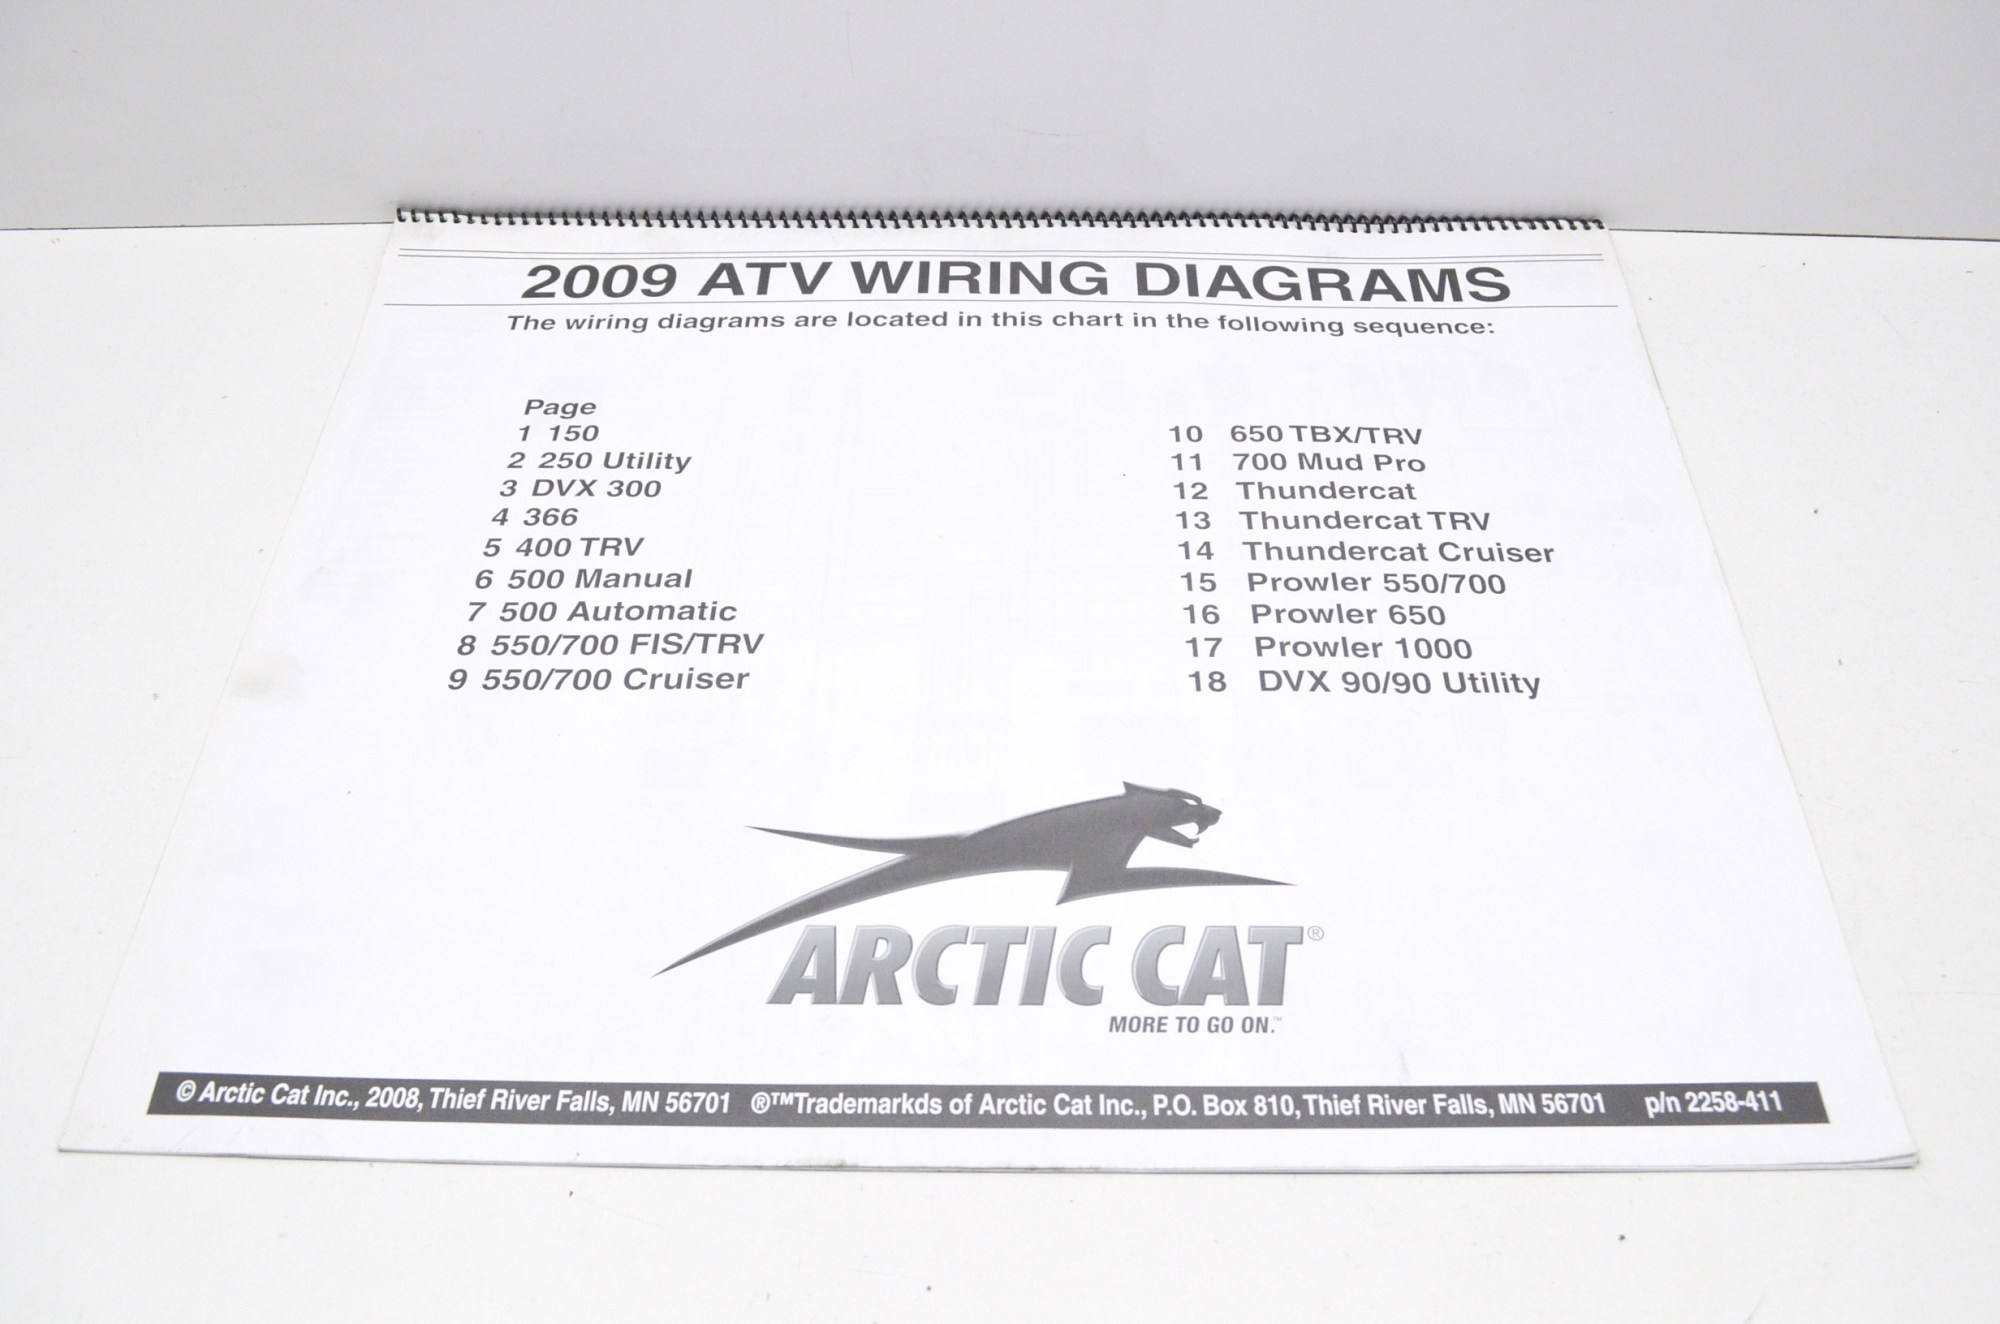 hight resolution of arctic cat 2258 411 2009 atv wiring diagrams qty 1 walmart com